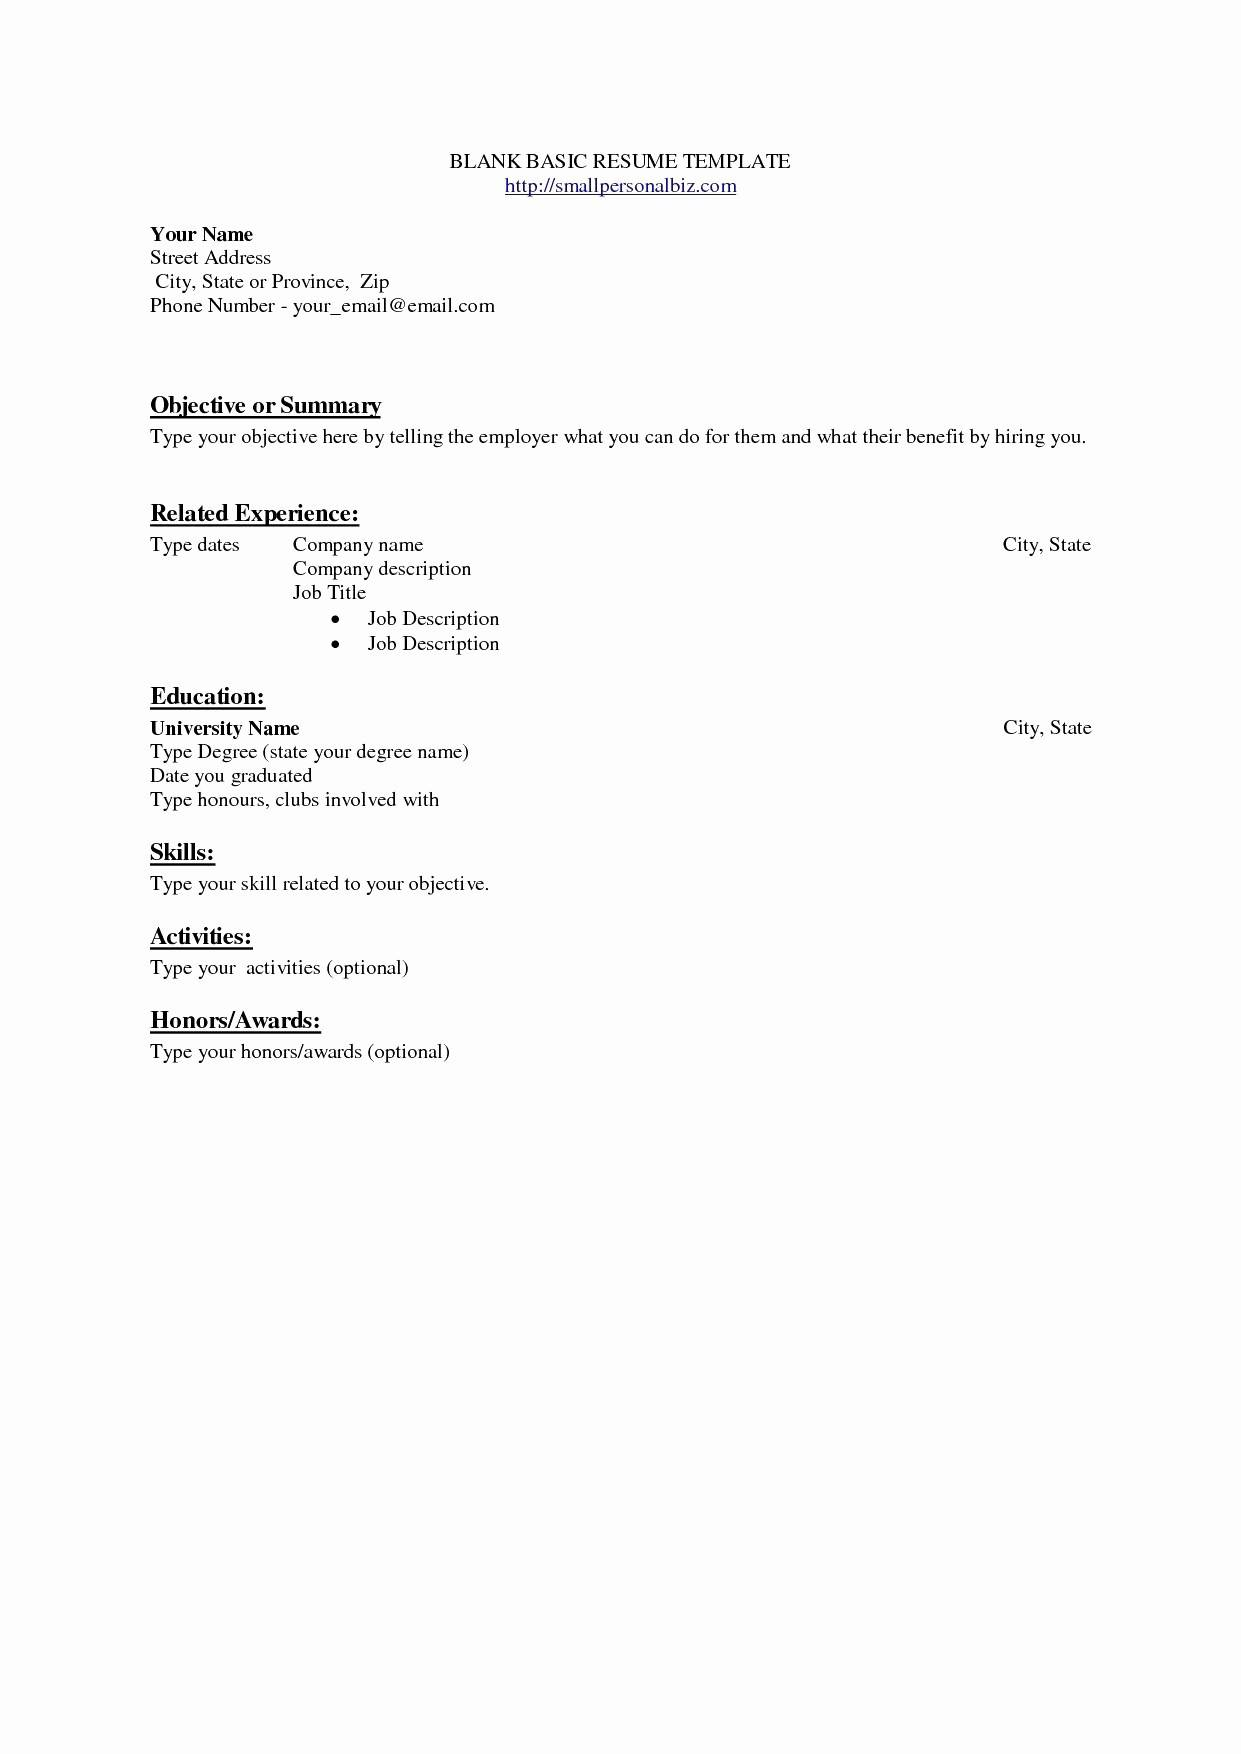 Professional Resume Builder - Incredible Free Cna Resume Builder